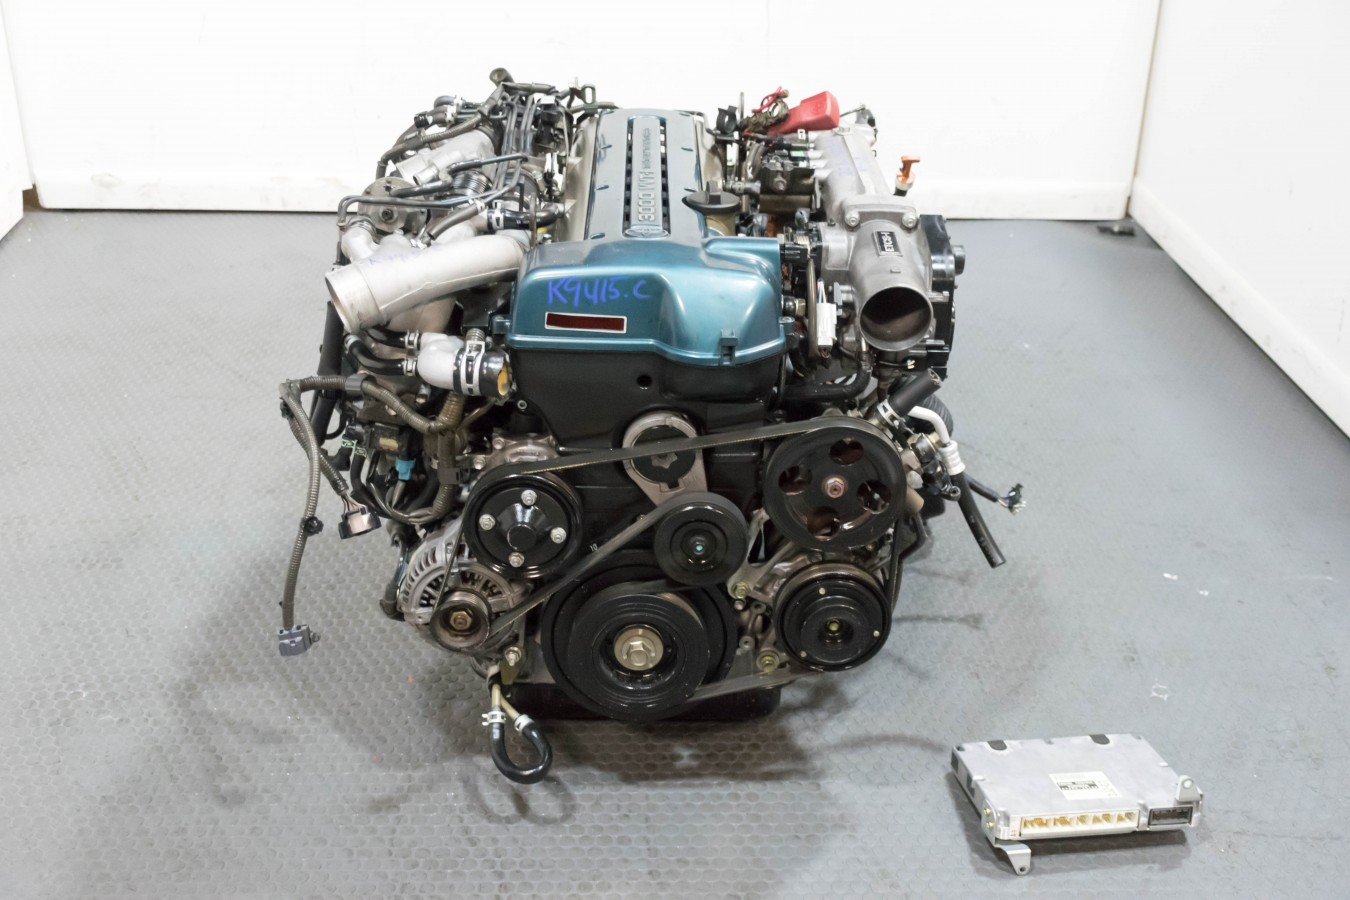 Toyota 2JZ-GTE VVTi Engine with Auto Trans ECU Harness for Aristo, Supra,  IS300, etc Low Miles